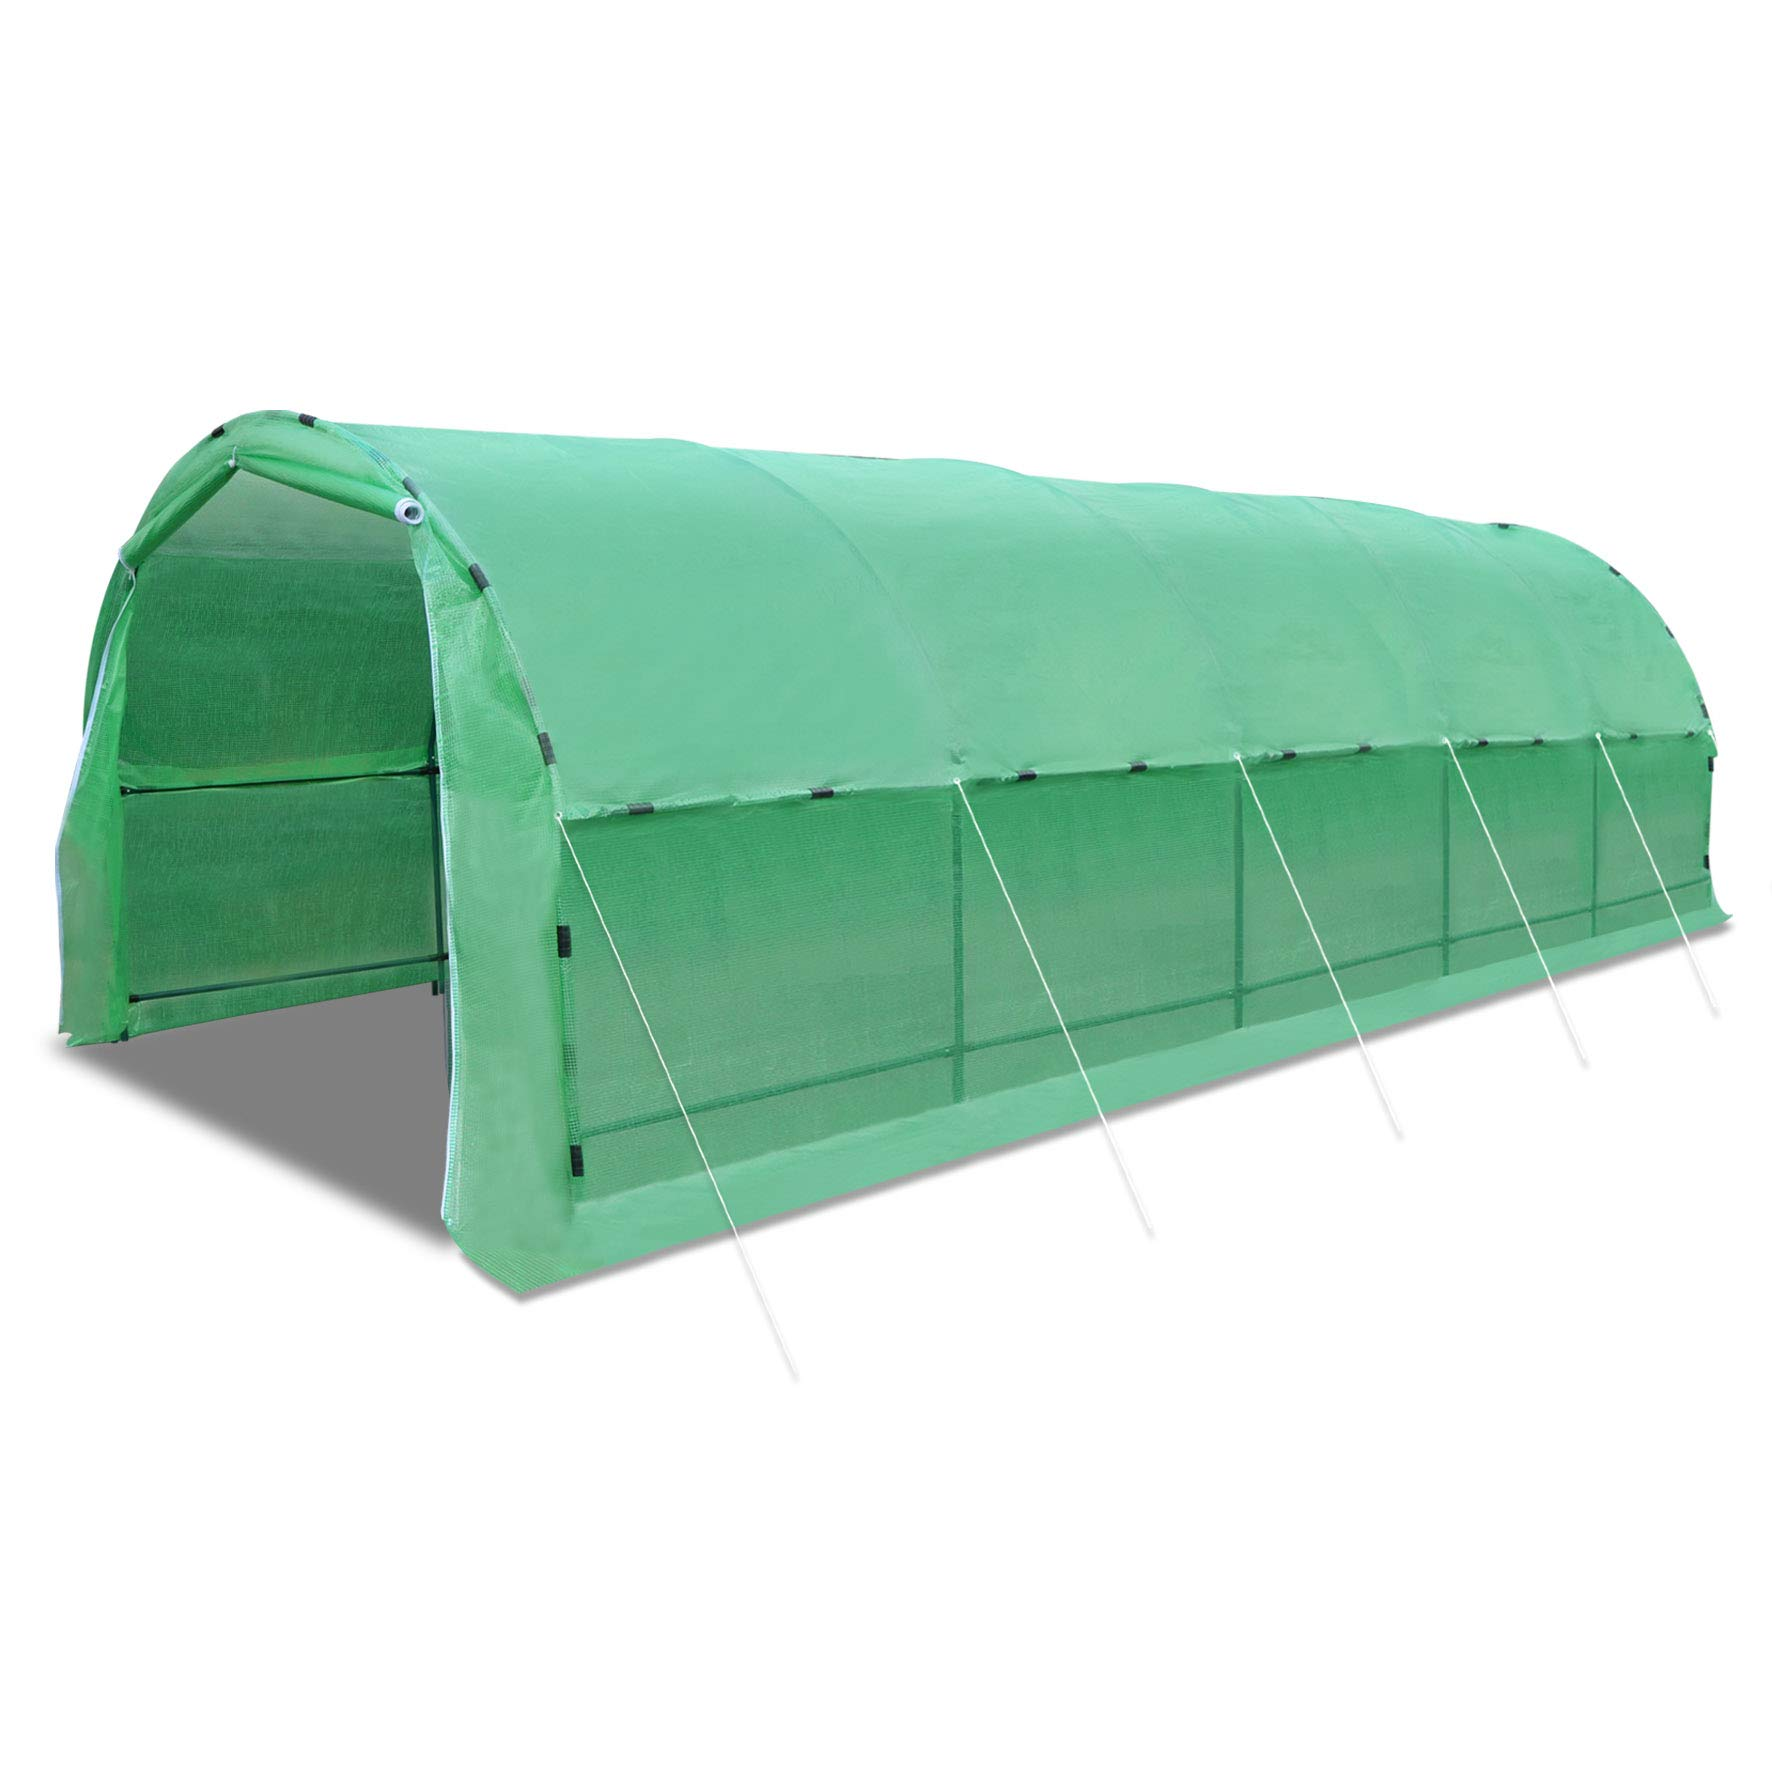 Strong Camel 24.6' X10' X 7' Portable Greenhouse Outdoor Large Walk-in Green Garden Hot House